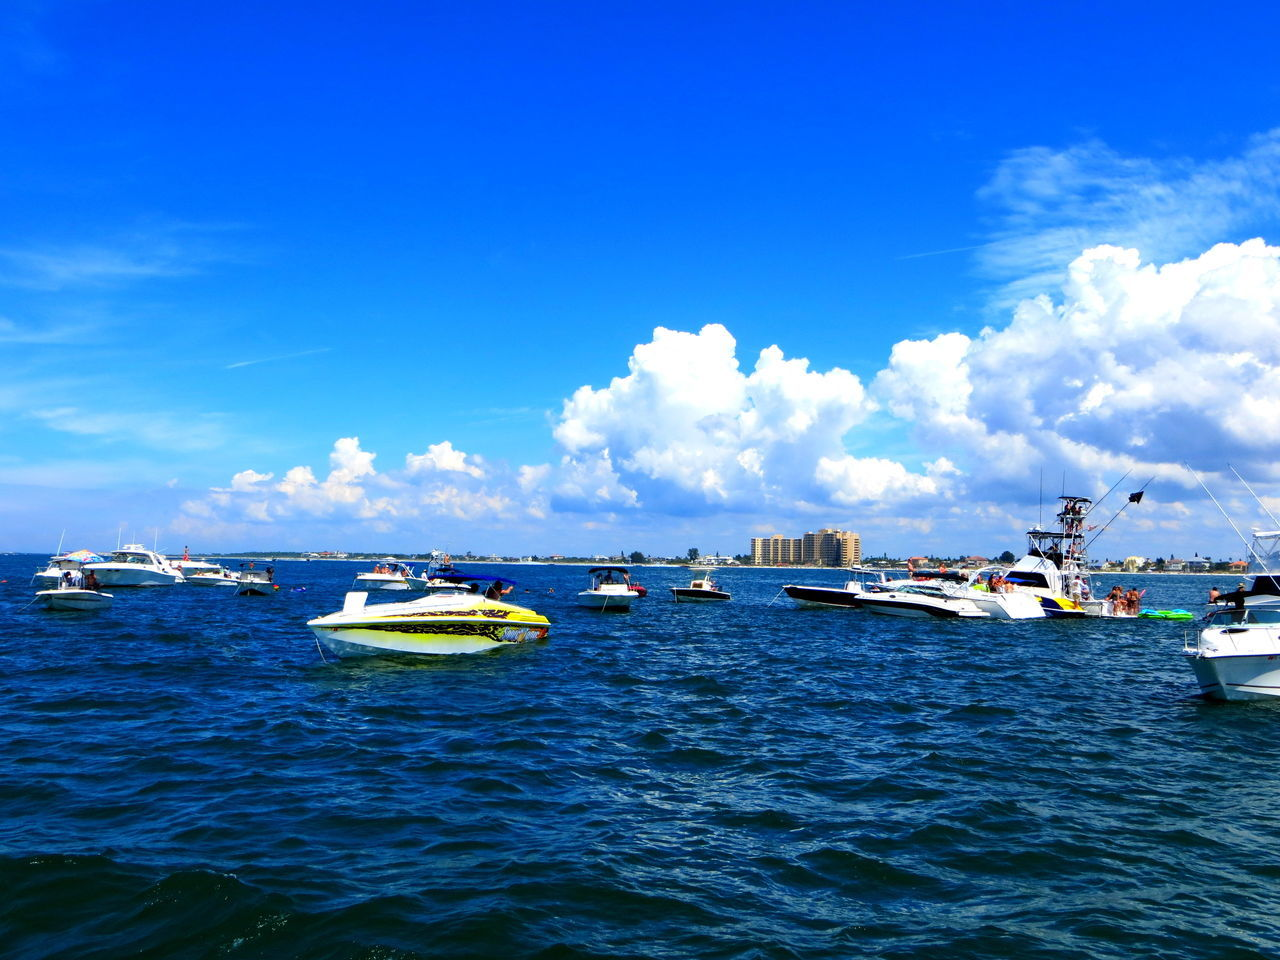 Beautiful Day Boat Races Boats⛵️ Cloud - Sky Nautical Vessel Out On The Water Outdoors Relaxing ♥ Sky Water Waterfront Weekend Activities White Clouds And Blue Sky White Clouds On The Sea Blue Wave